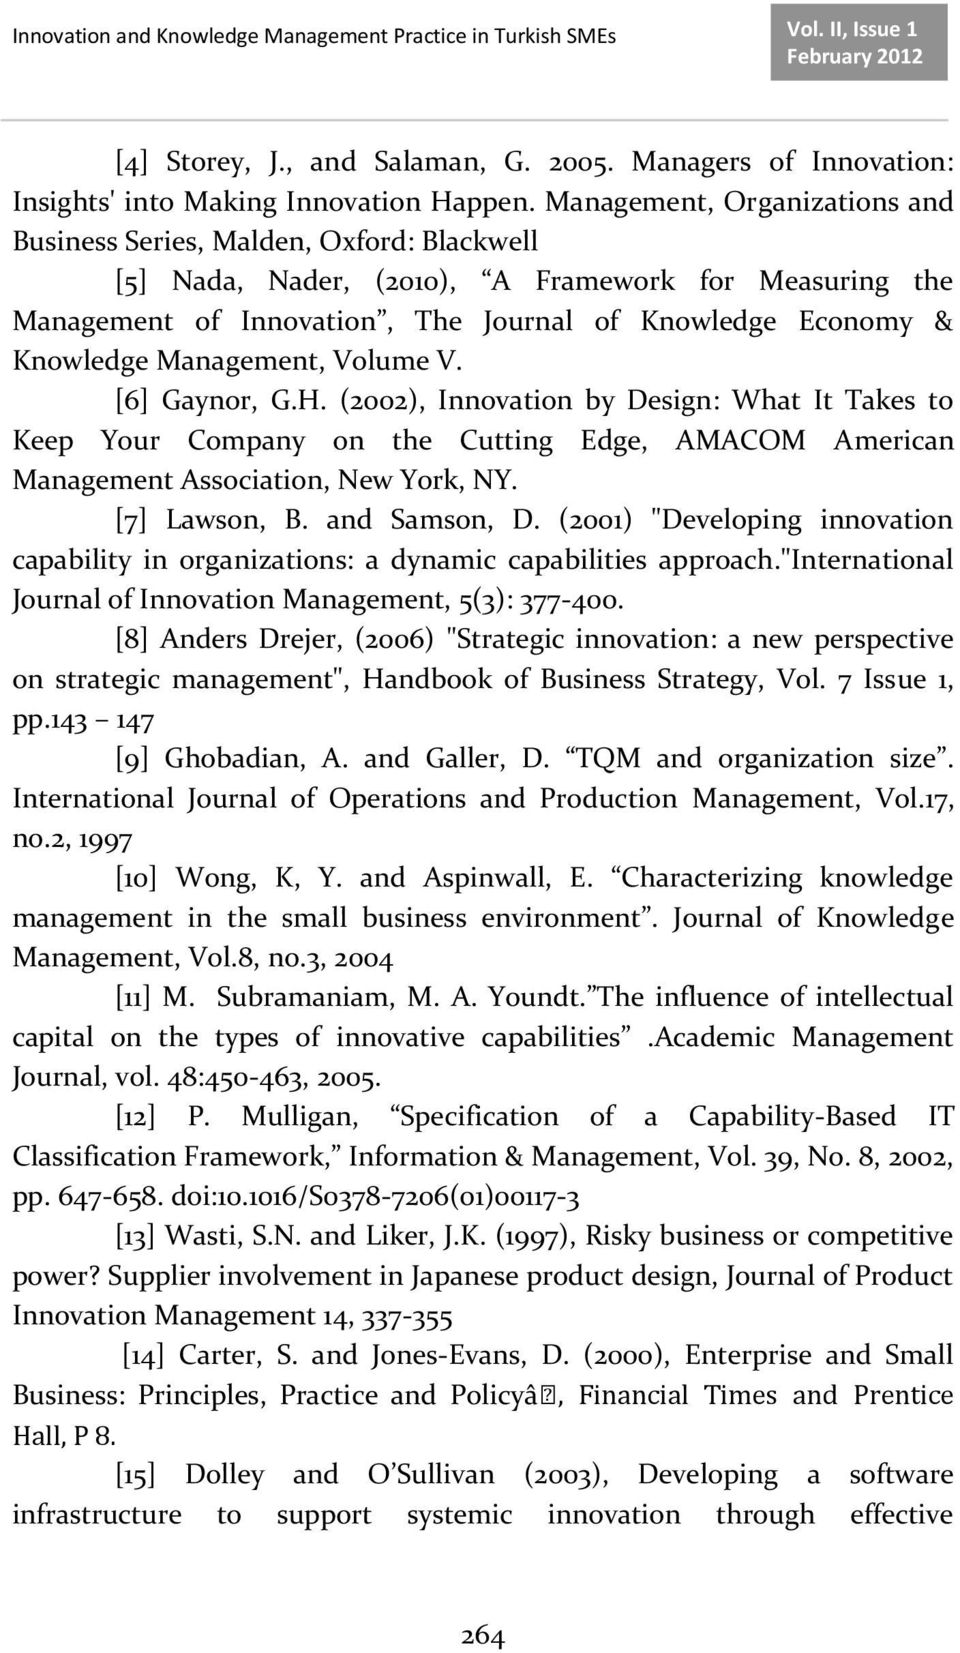 Management, Volume V. [6] Gaynor, G.H. (2002), Innovation by Design: What It Takes to Keep Your Company on the Cutting Edge, AMACOM American Management Association, New York, NY. [7] Lawson, B.